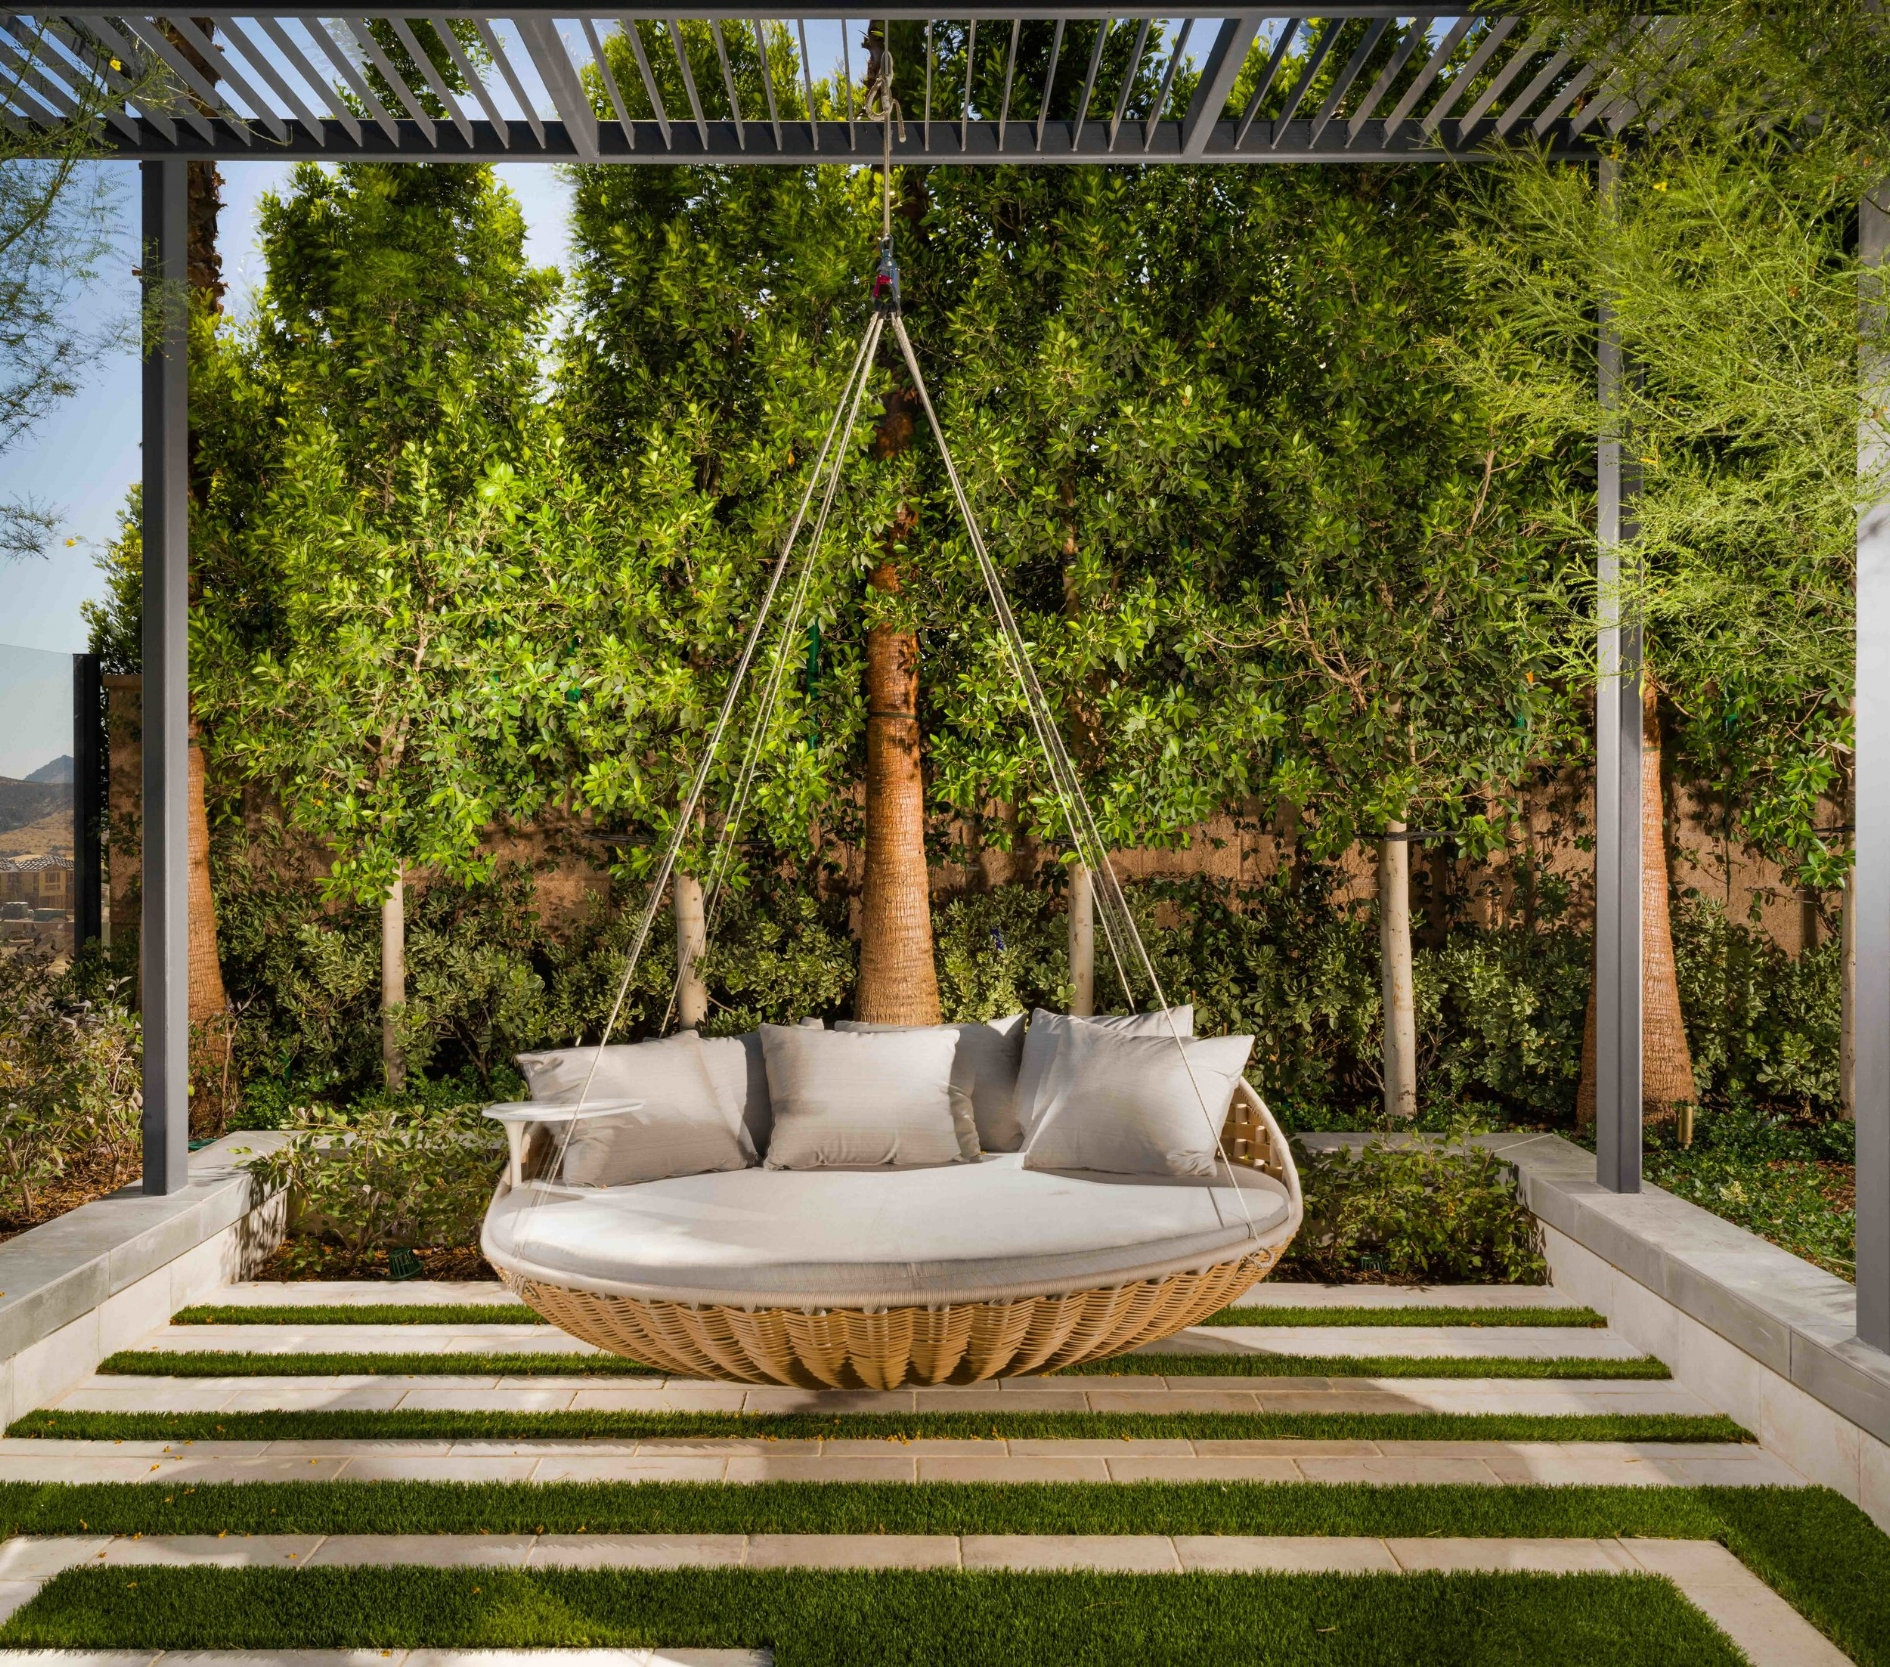 7-Beacon-Moreno_Outdoor Lounge Swing a.jpg